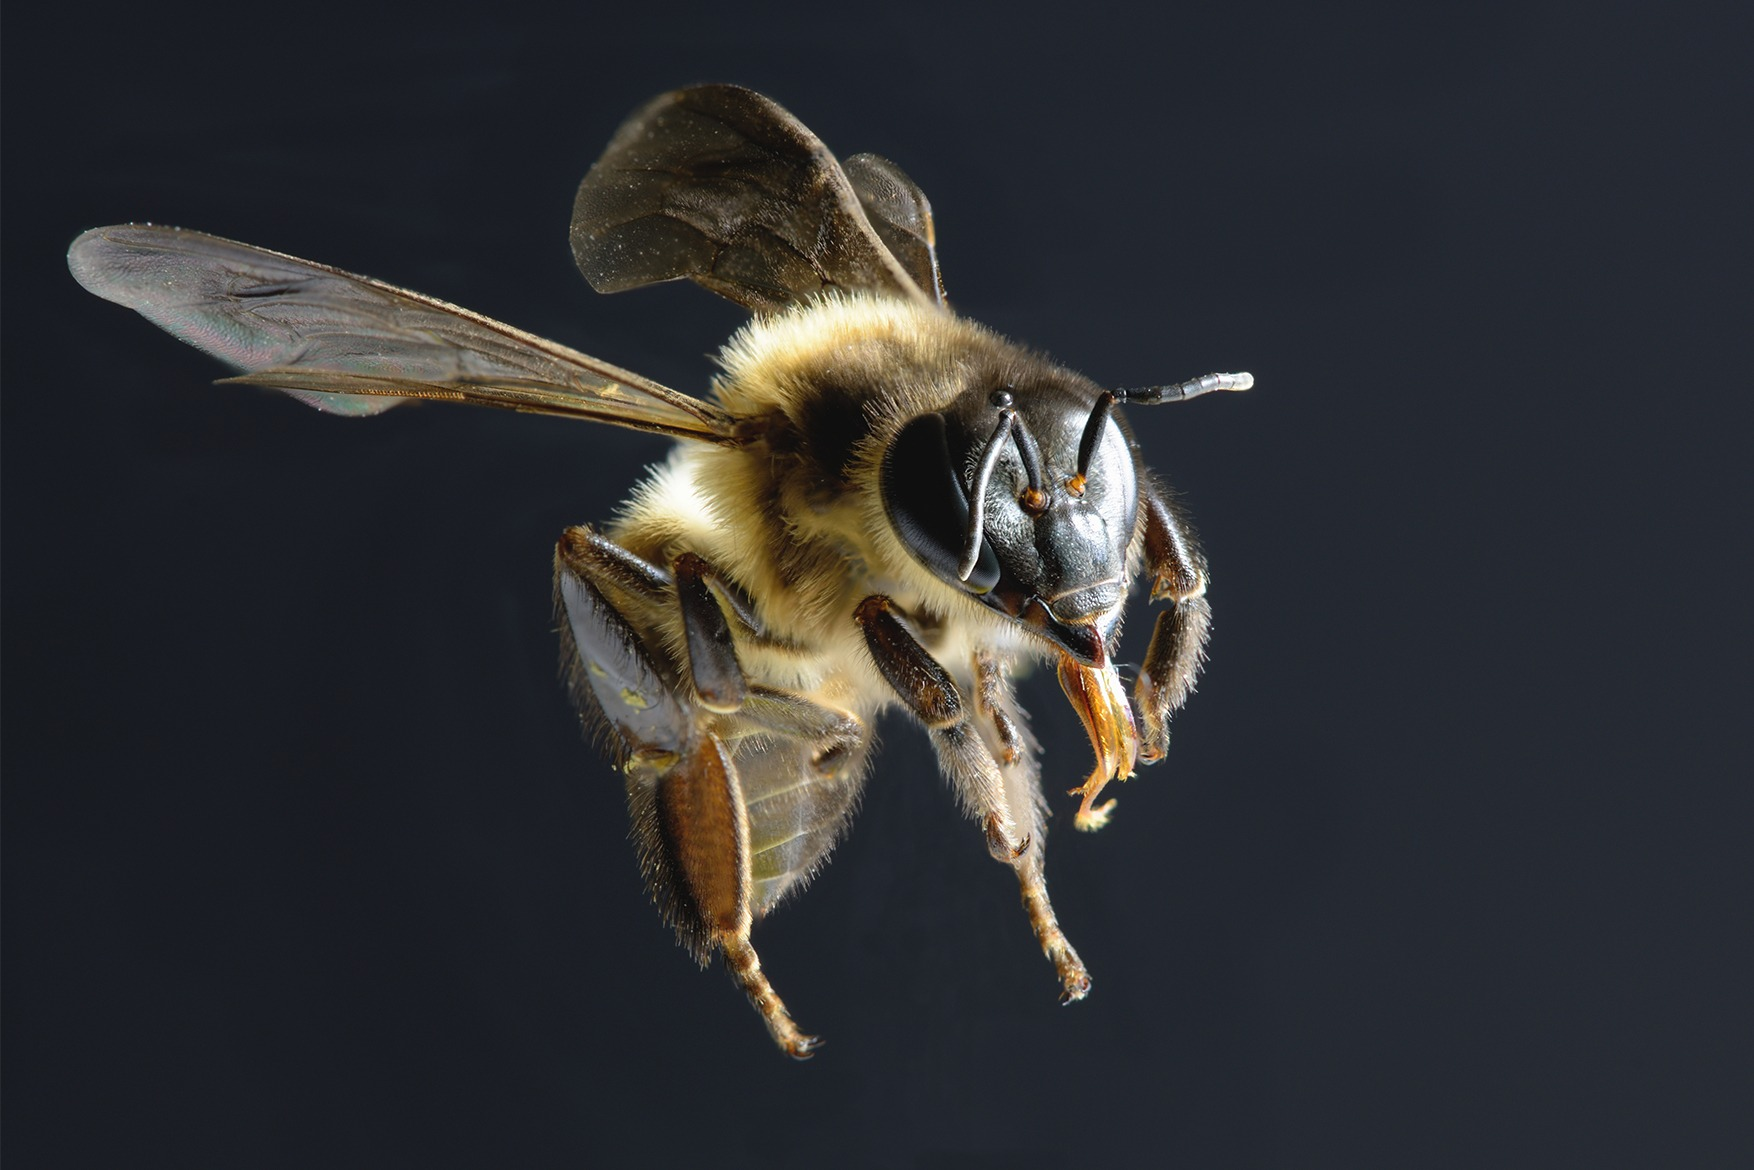 Bee flying against black background